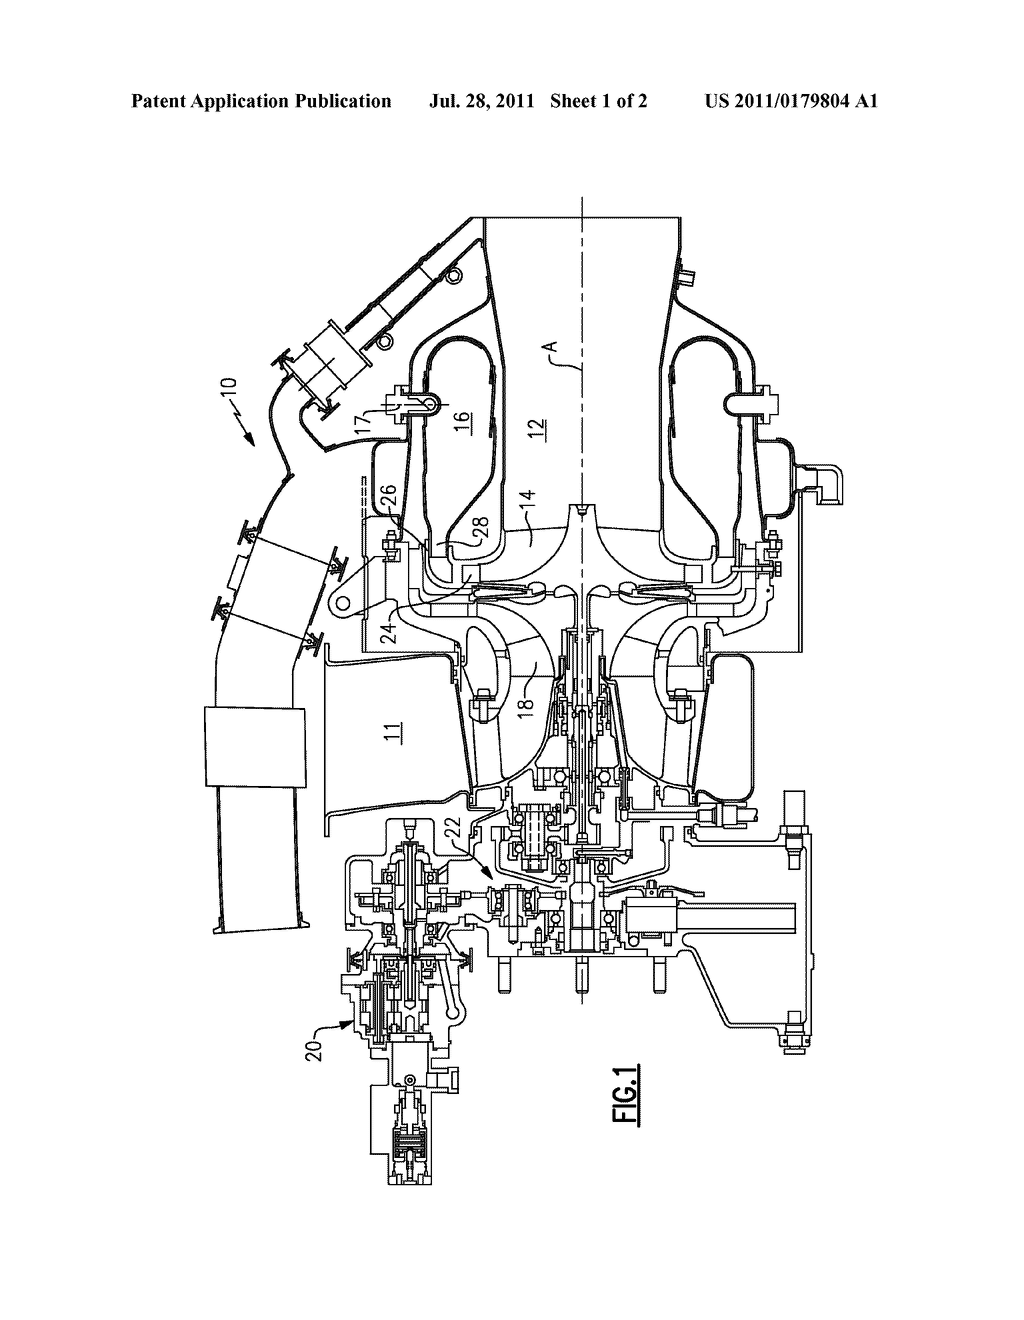 radial engine diagram wiring diagram database radial engine cutaway diagrams radial turbine engine floating ring seal diagram schematic and radial engine front diagram radial engine diagram